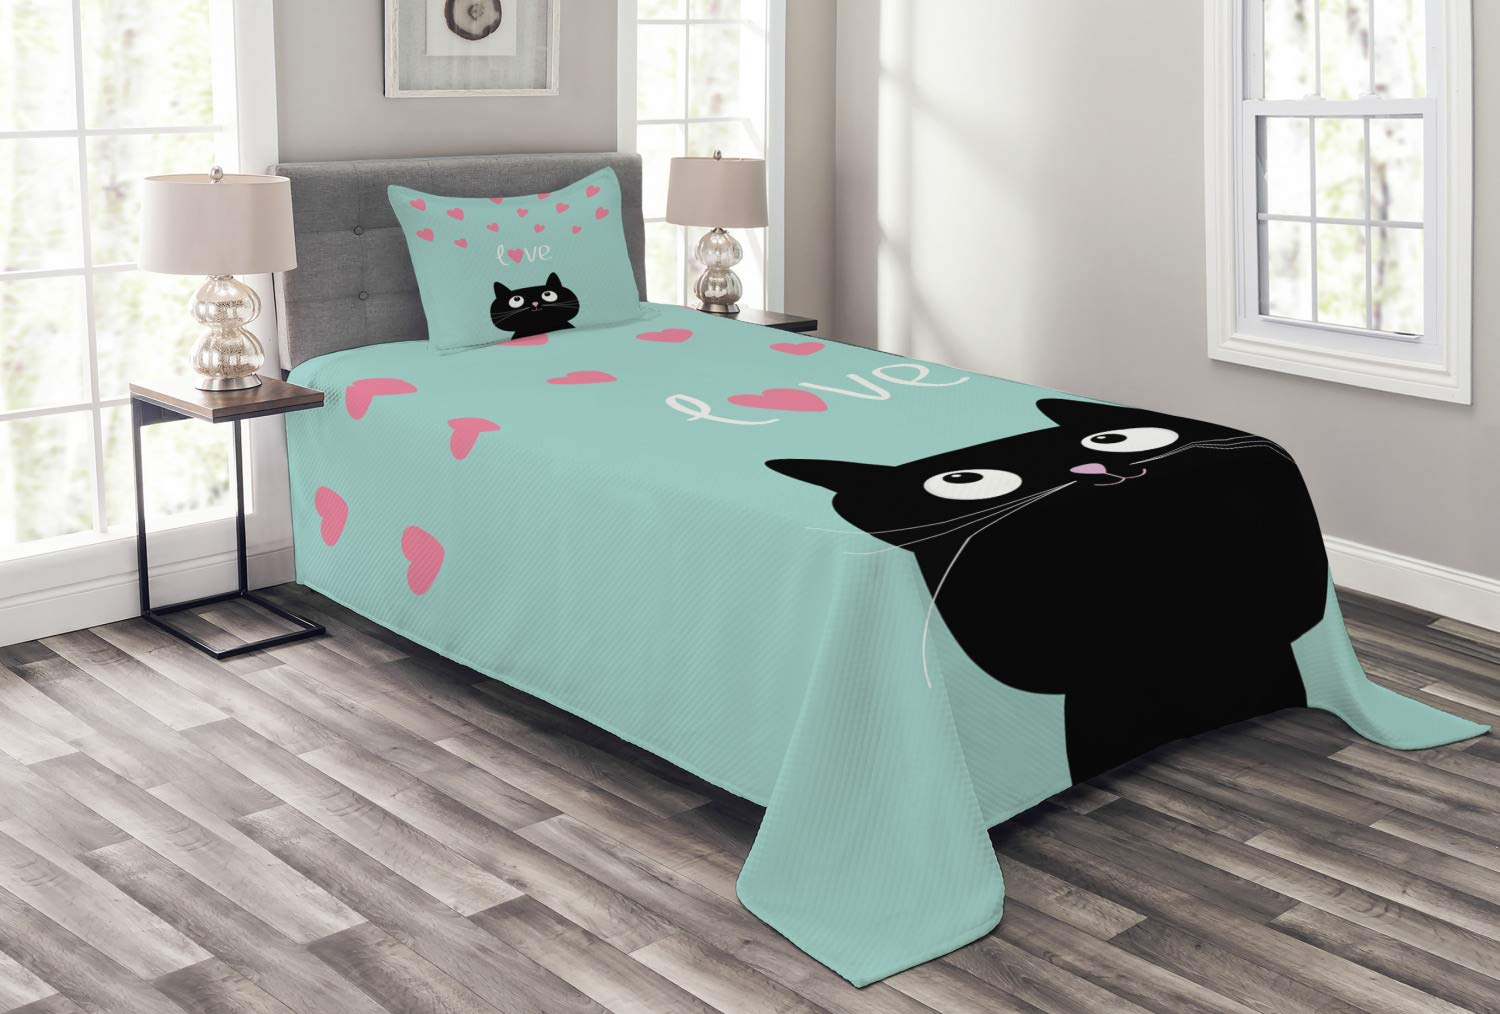 Lunarable Valentines Bedspread, Kitty Heart Cat Companions Kids Children Illustration, Decorative Quilted 2 Piece Coverlet Set with Pillow Sham, Twin Size, Seafoam Black by Lunarable